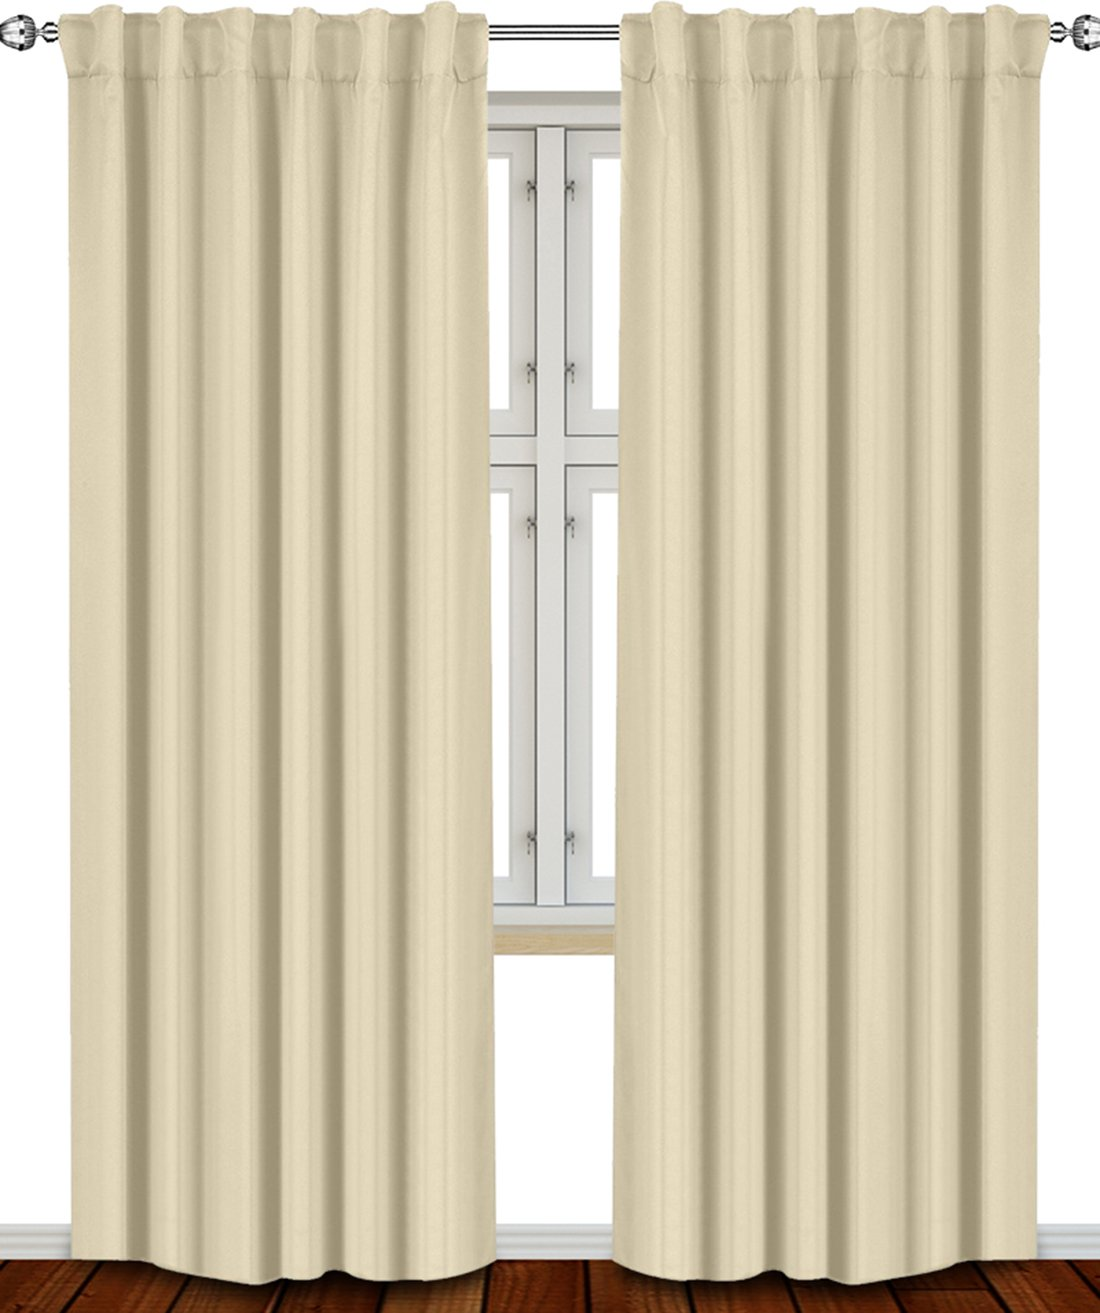 Thermal Insulated Blackout Curtains Beige, 2 Panels